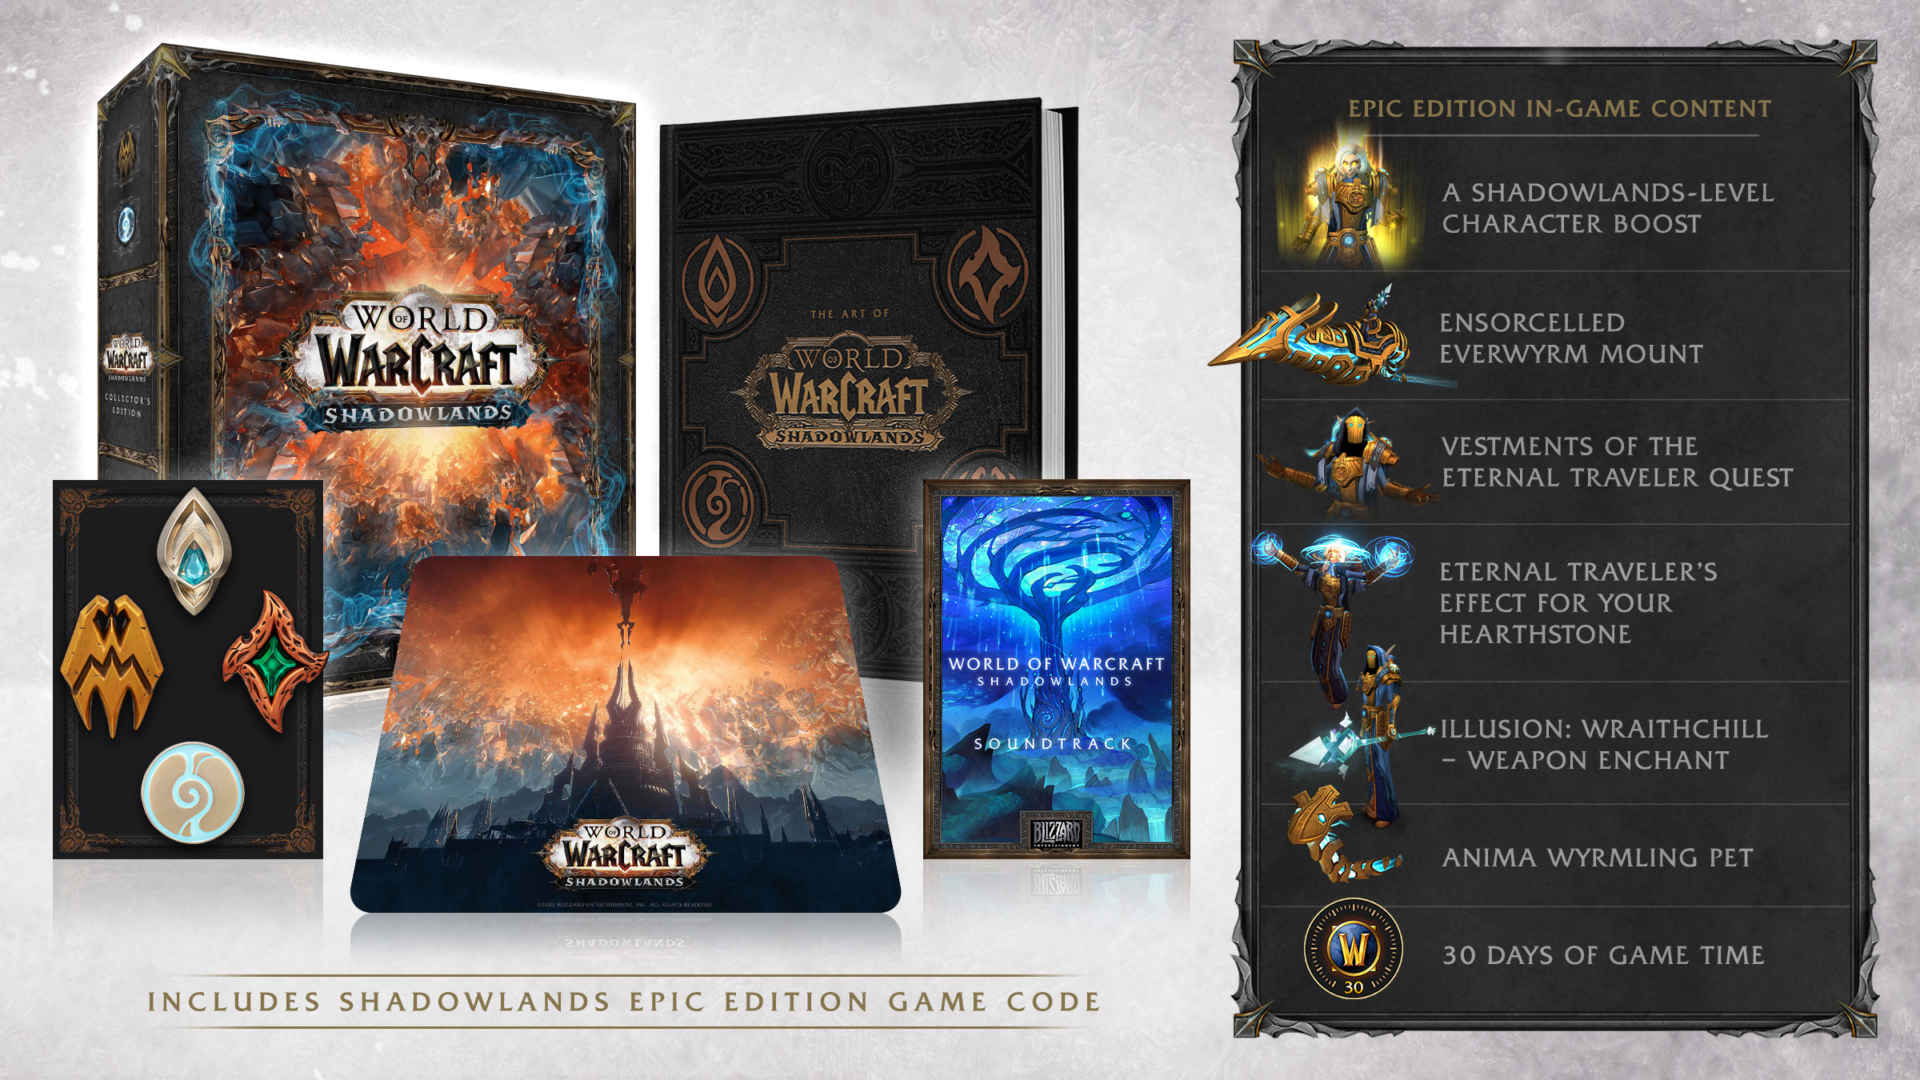 World of Warcraft: Shadowlands l'edizione da collezione